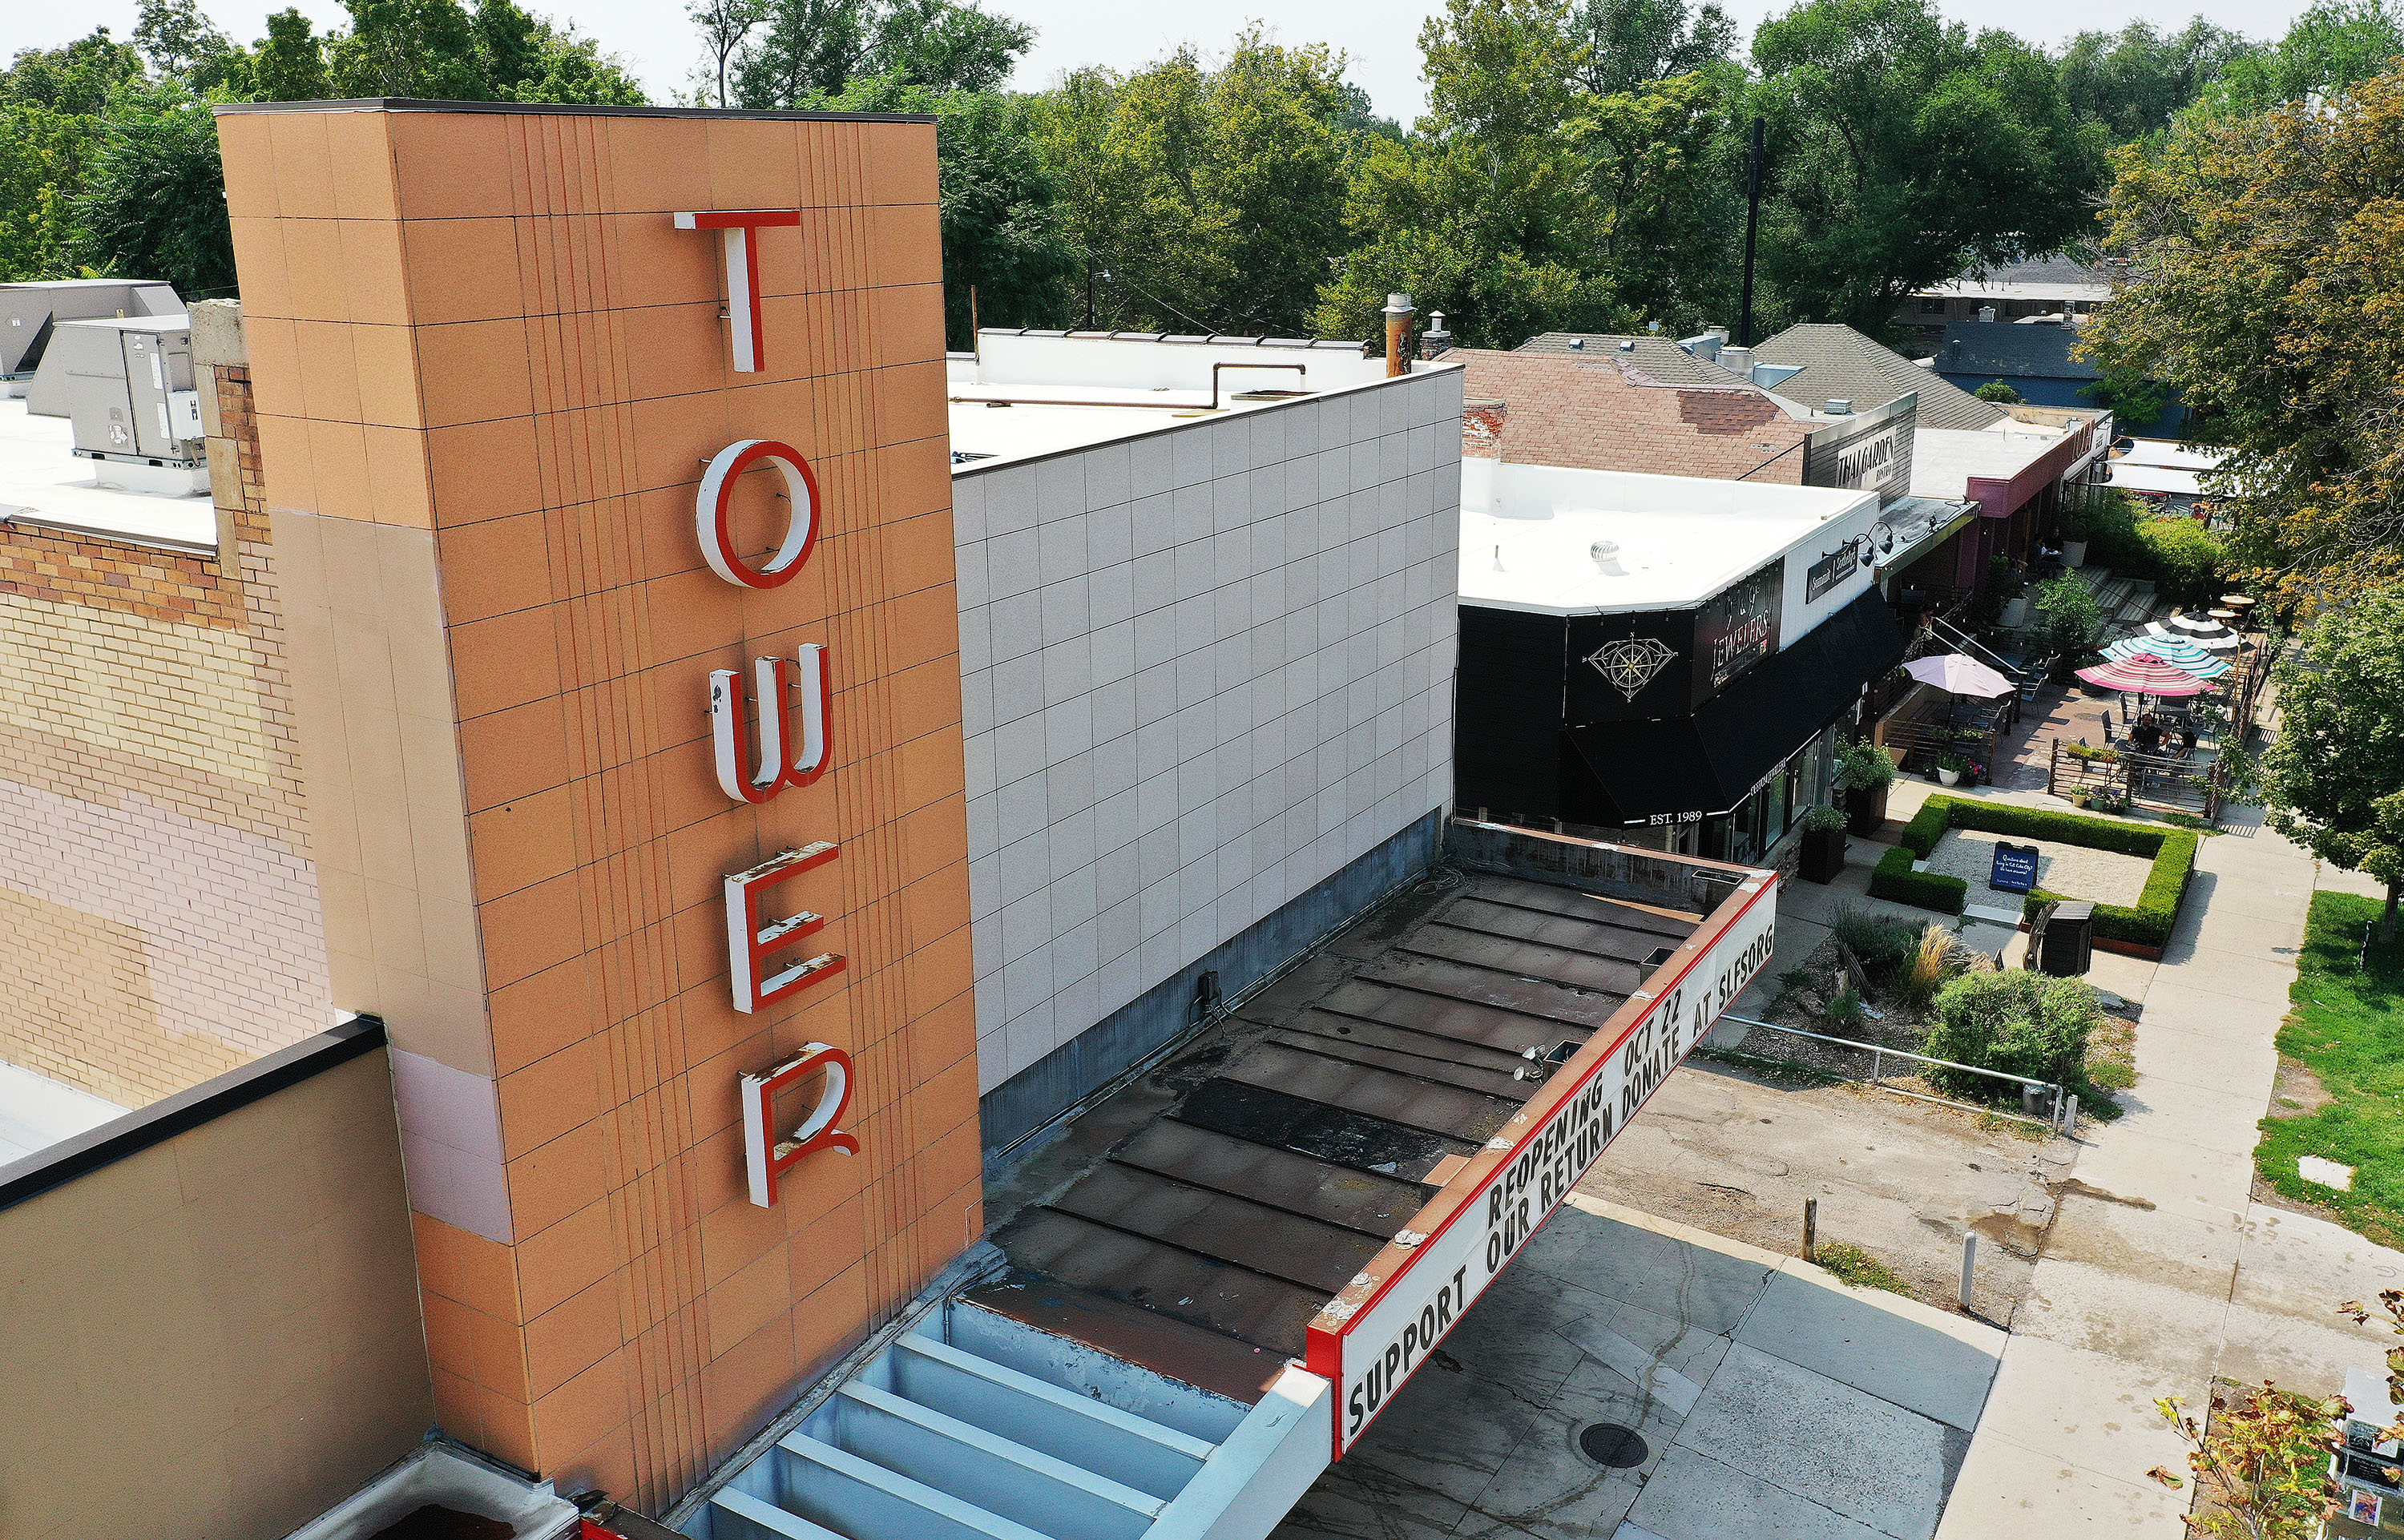 The Tower Theatre in Salt Lake City is pictured on Friday, Aug. 27, 2021. The Salt Lake Film Society oversees one of the biggest art house cinema operations in the country but last spring shut its doors due to COVID-19. The society has developed and launched its own custom streaming platform.